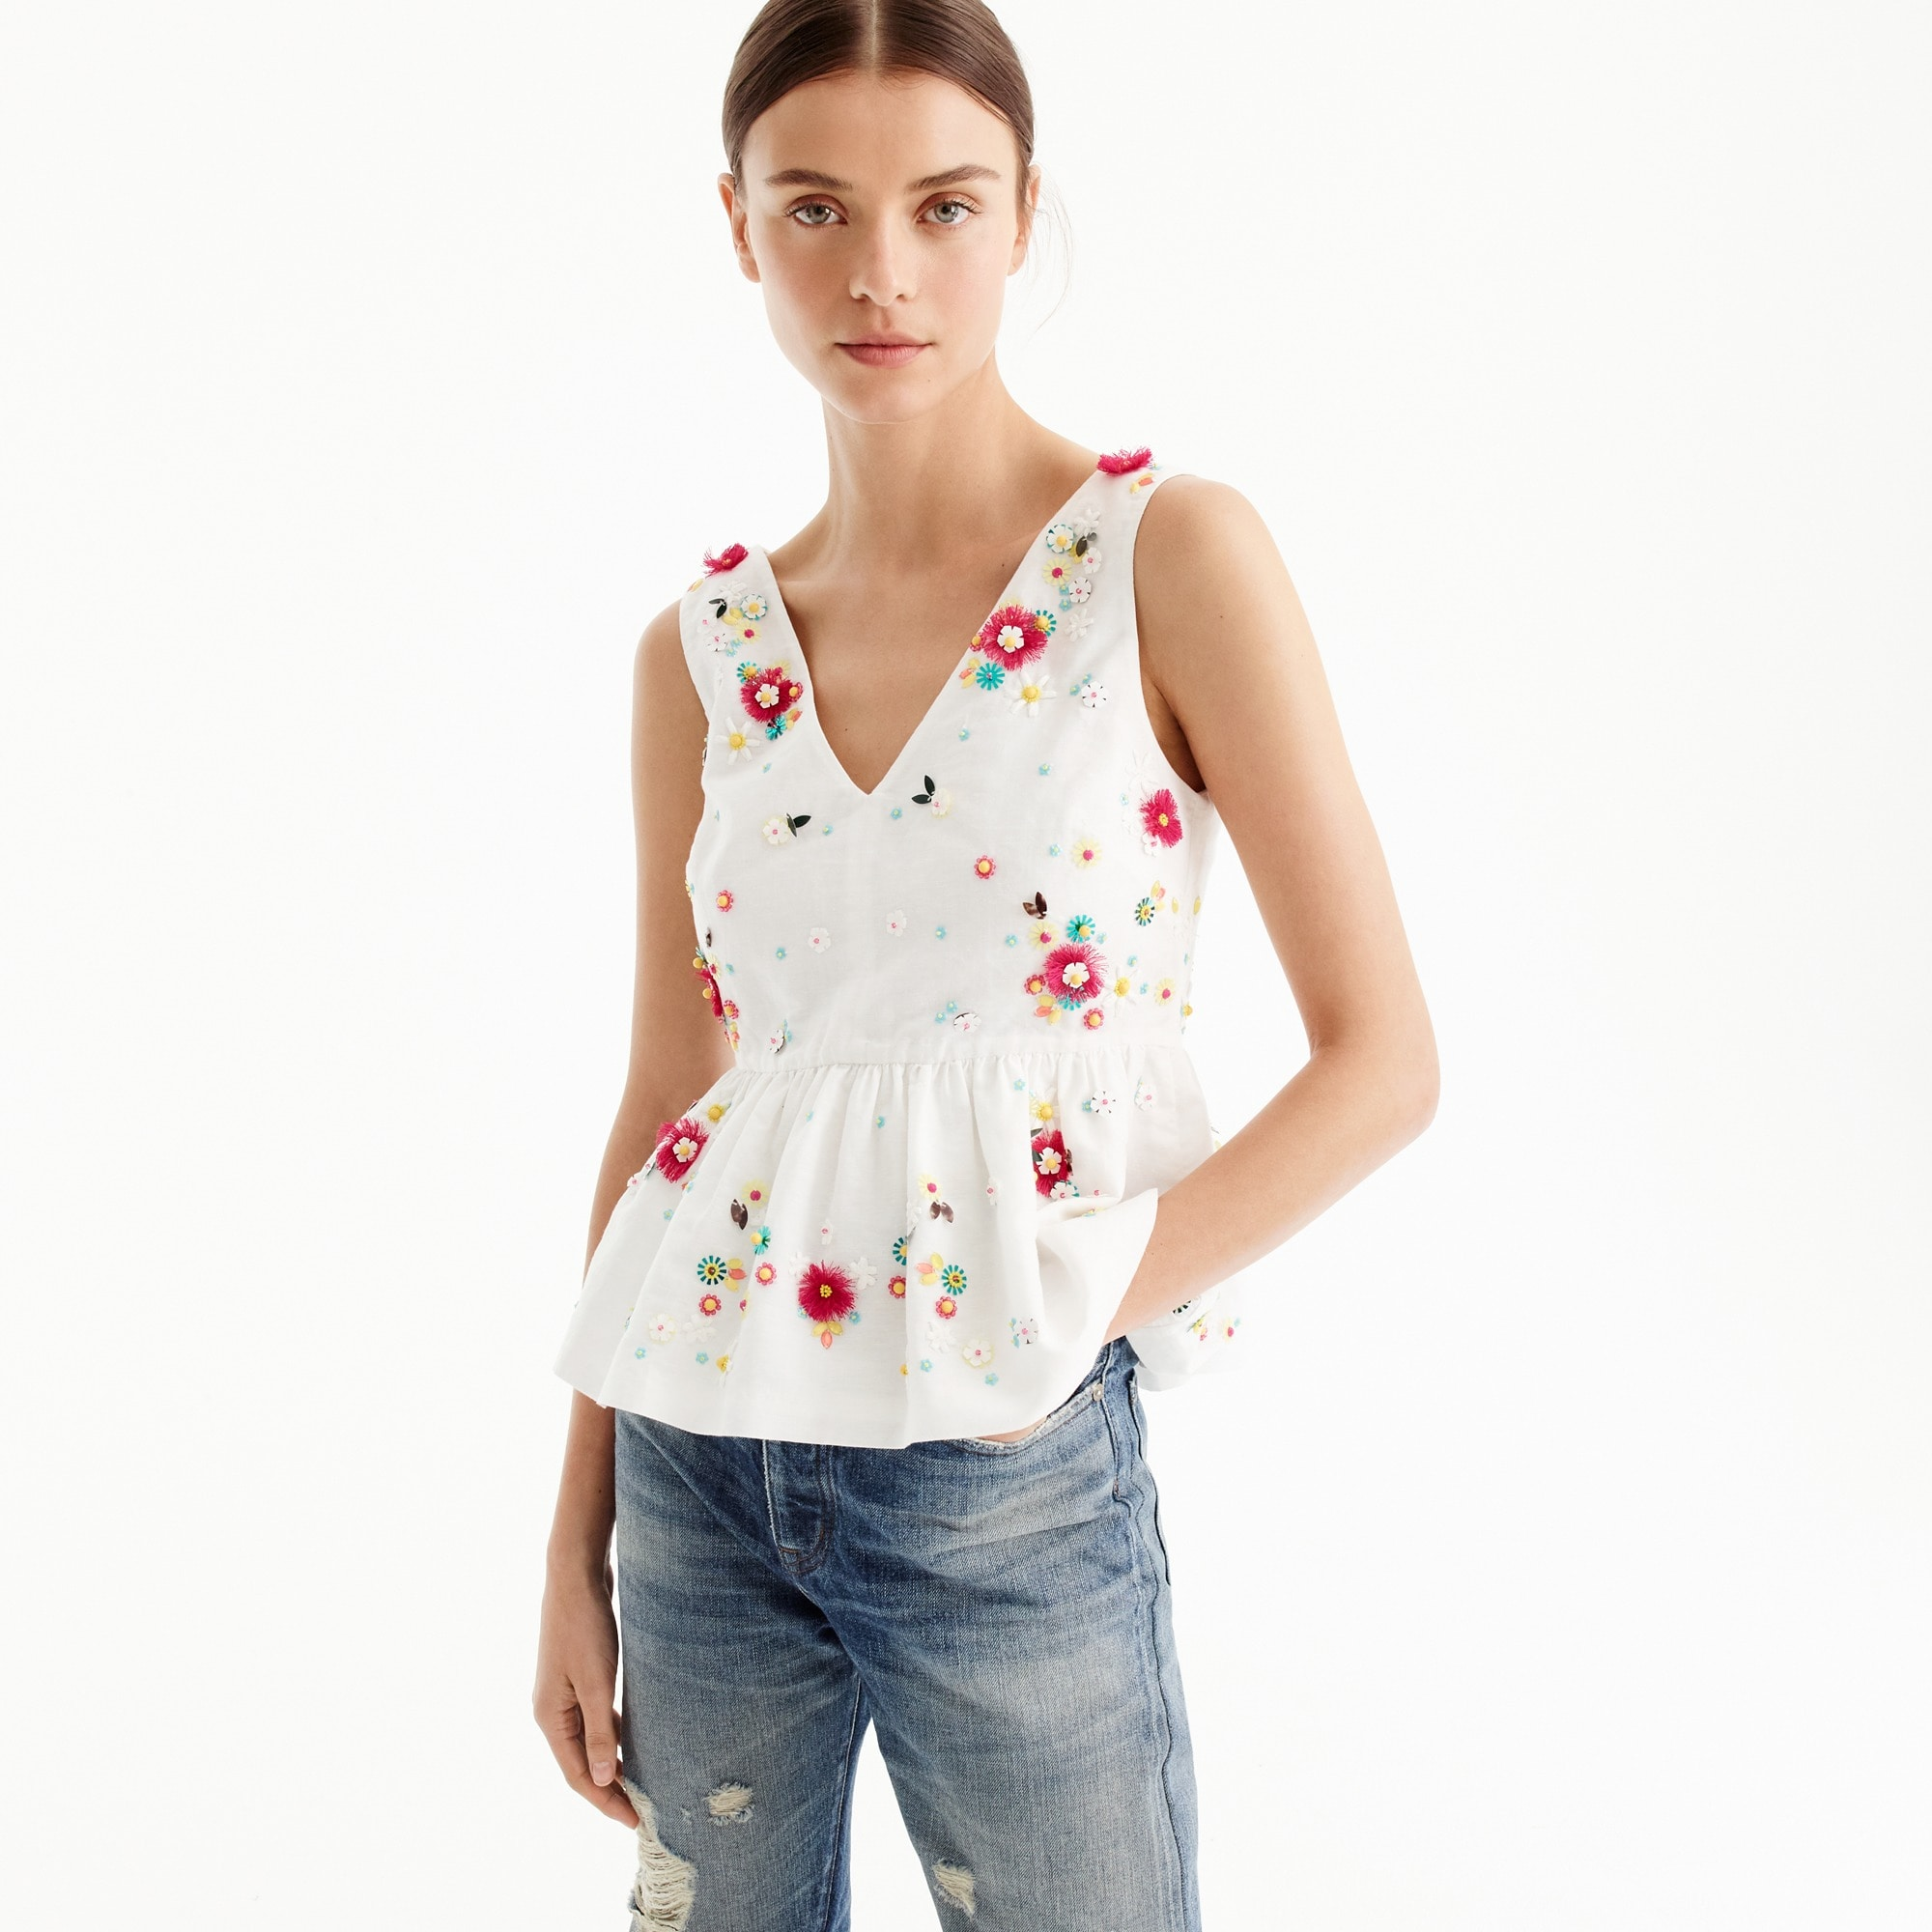 Hand-embellished floral top